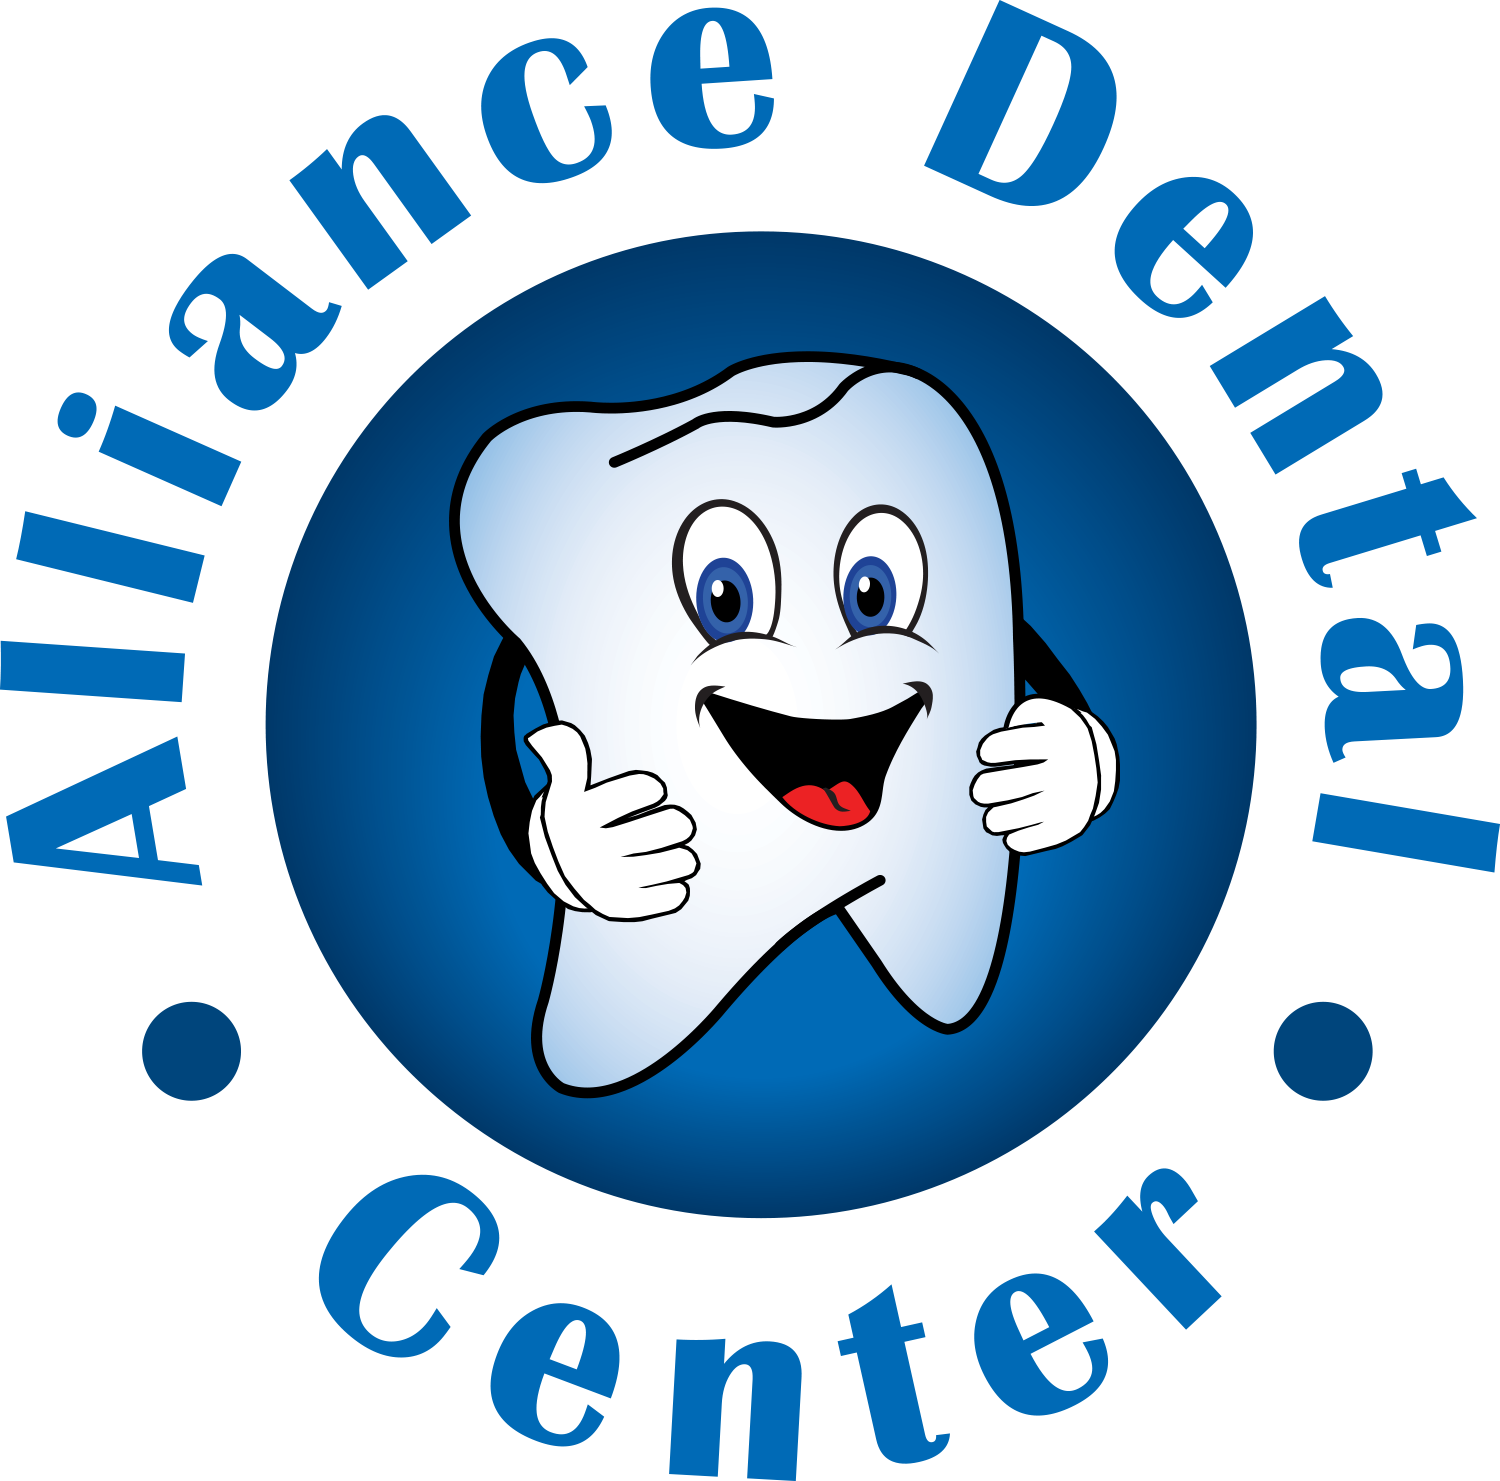 Alliance Dental Center : Dentists in Jackson Heights, Queens NY 11372 | 718-424-7100